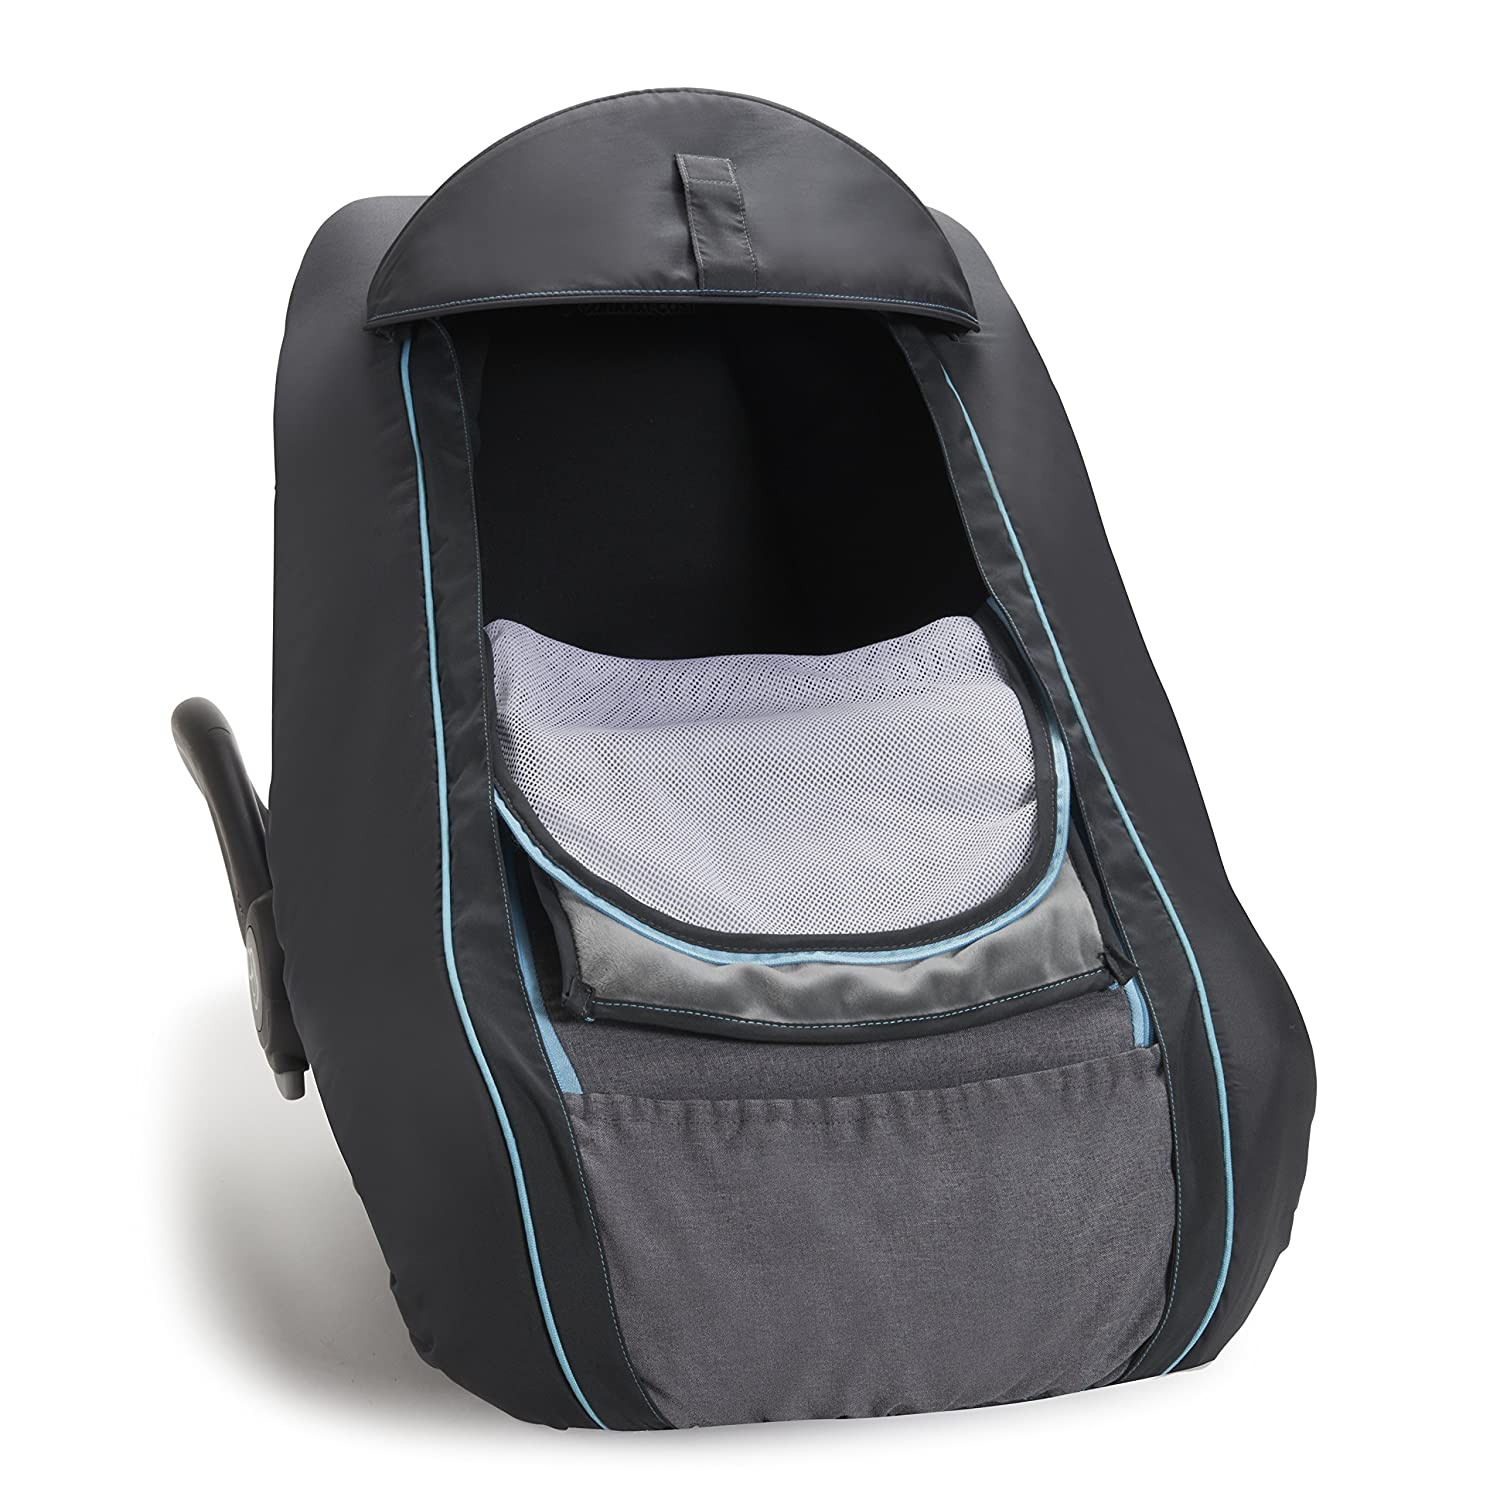 BRICA 61341 SmartCover - Infant Car Seat Cover, Grey